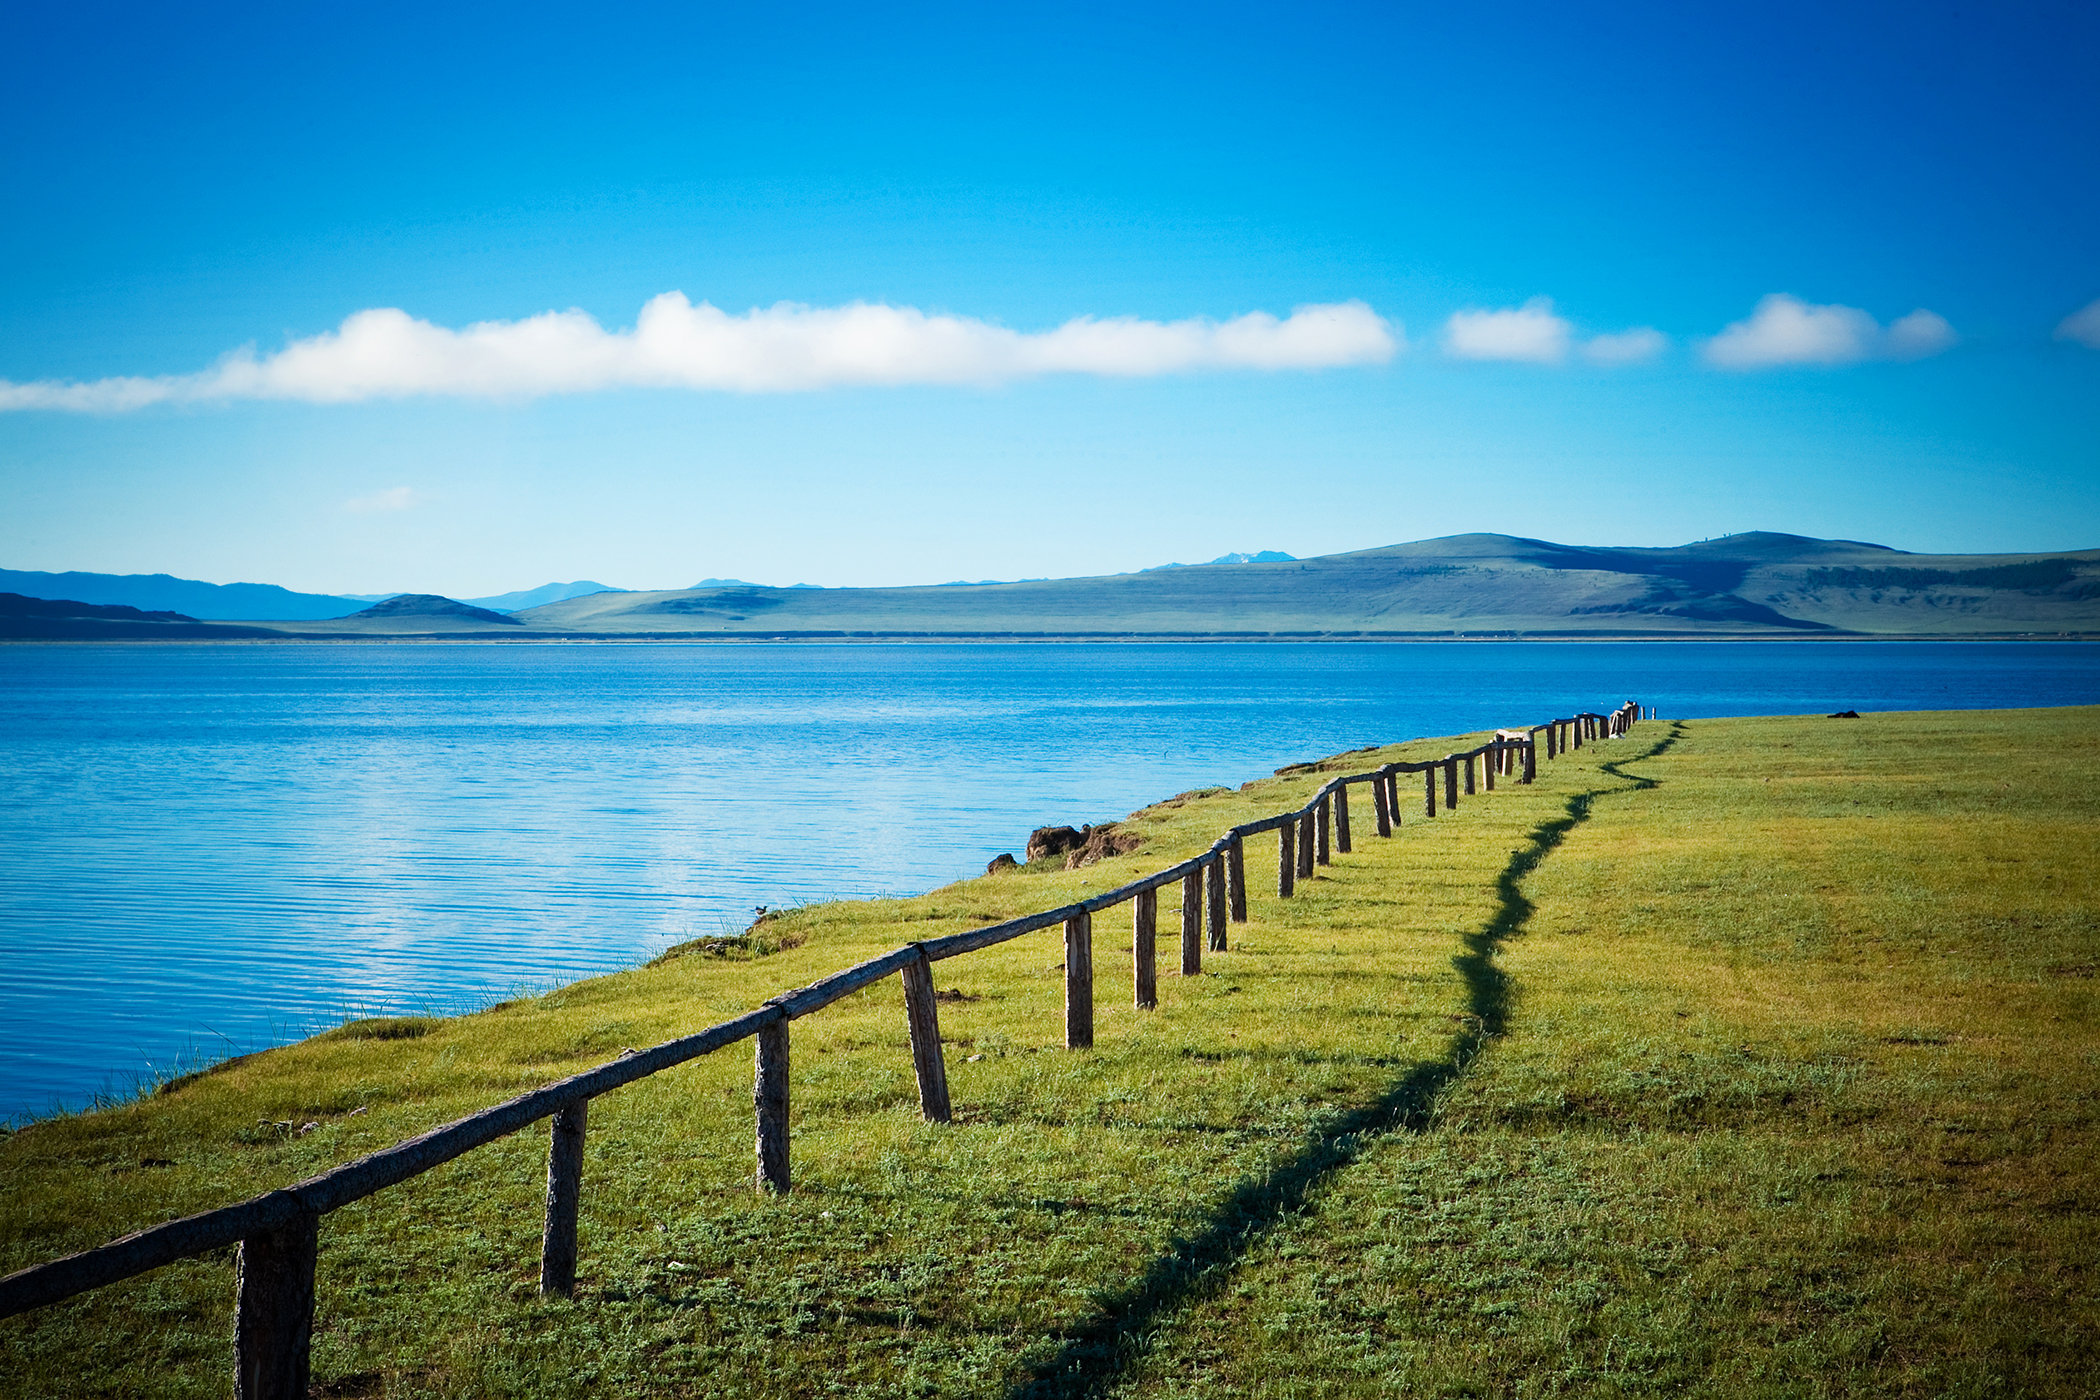 Lake in Mongolia